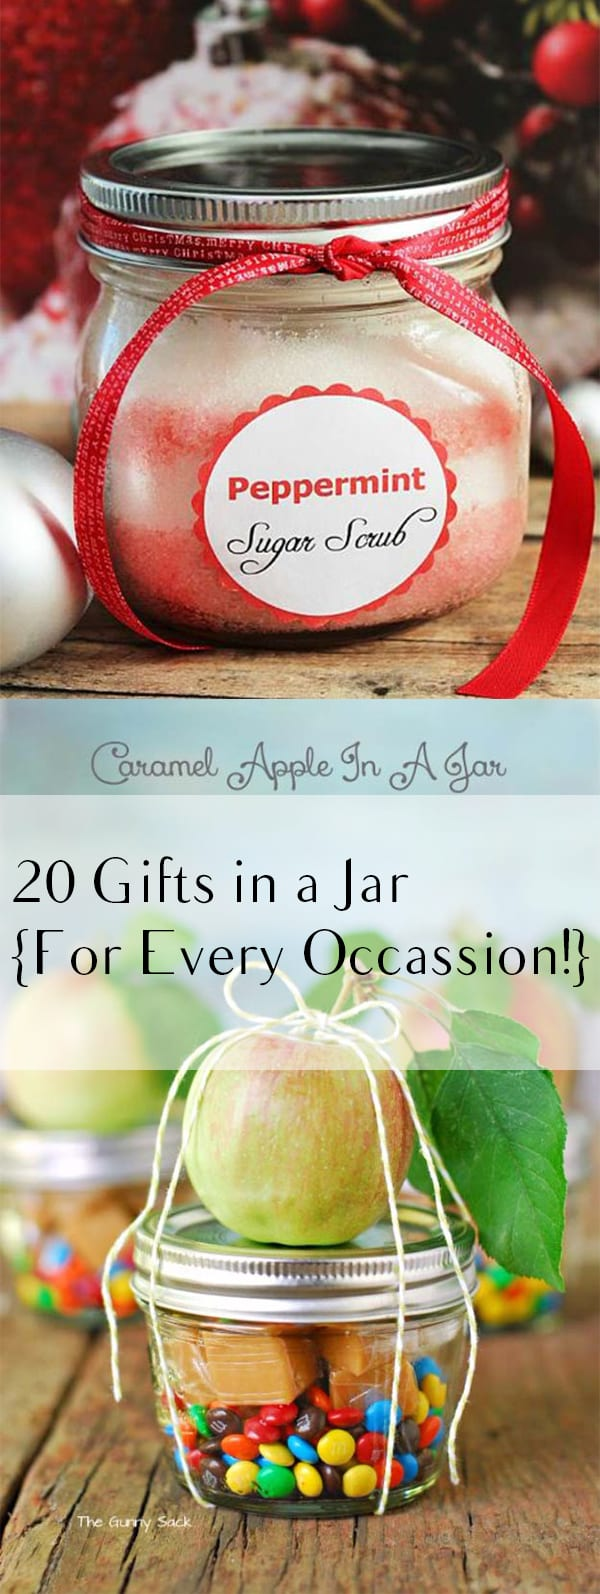 Easy Gifts, Easy Gifts in a Jar, Gifts in a Jar, DIY Gifts in a Jar, Gifts in a Jar Ideas, Gifts in a Jar for Him, Gifts in a Jar for Her, DIY Gifts, Easy Gifts